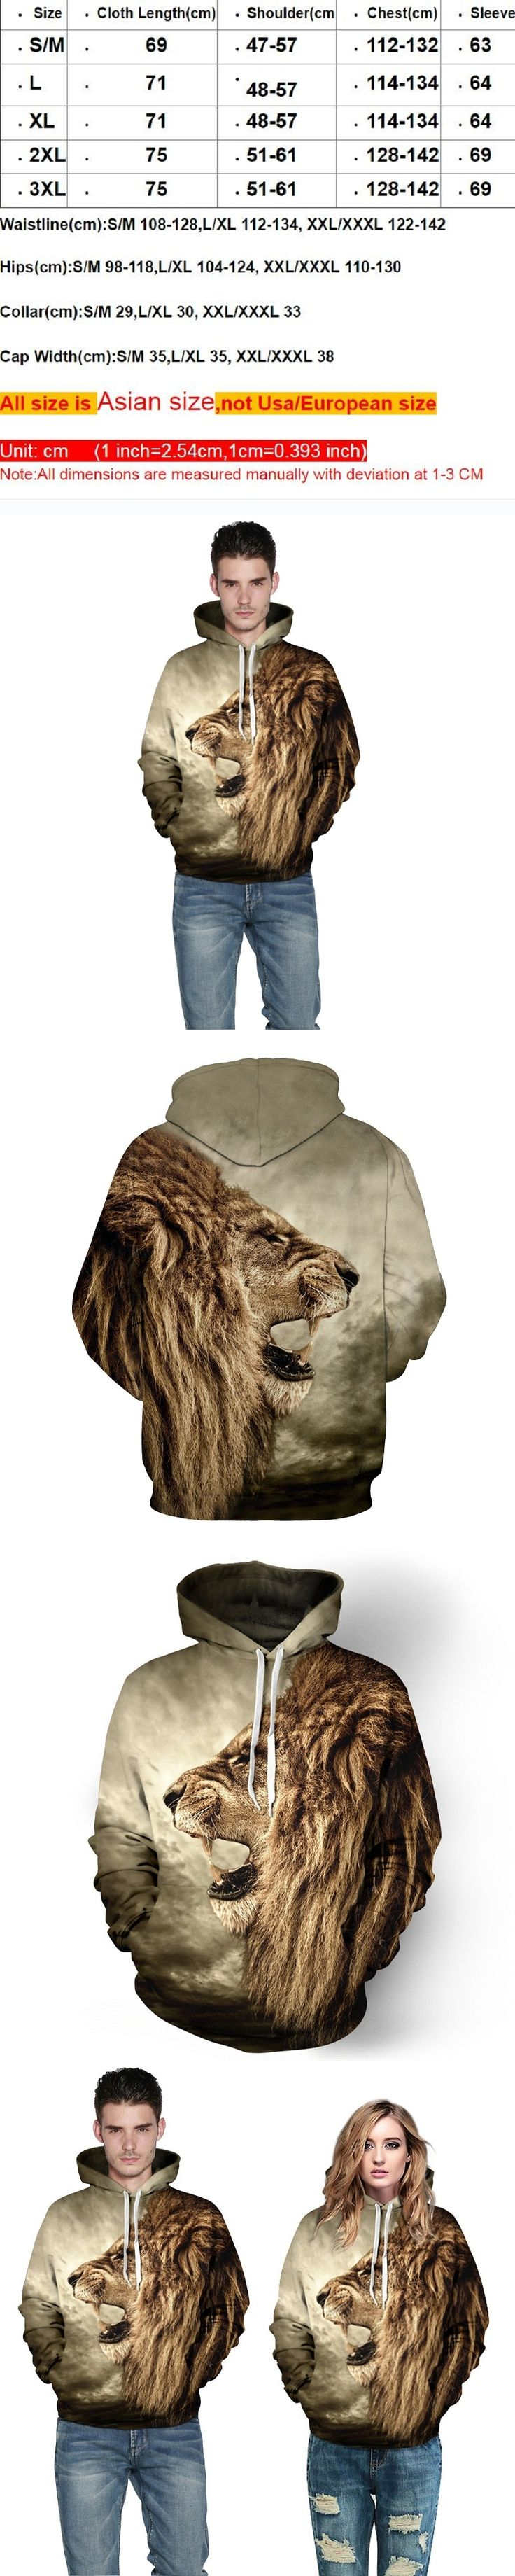 Fashion 3D Animal print Hoodies Sweatshirts for men women couple Hooded punk street wear Outfits Casual Galaxy Coats Pullover